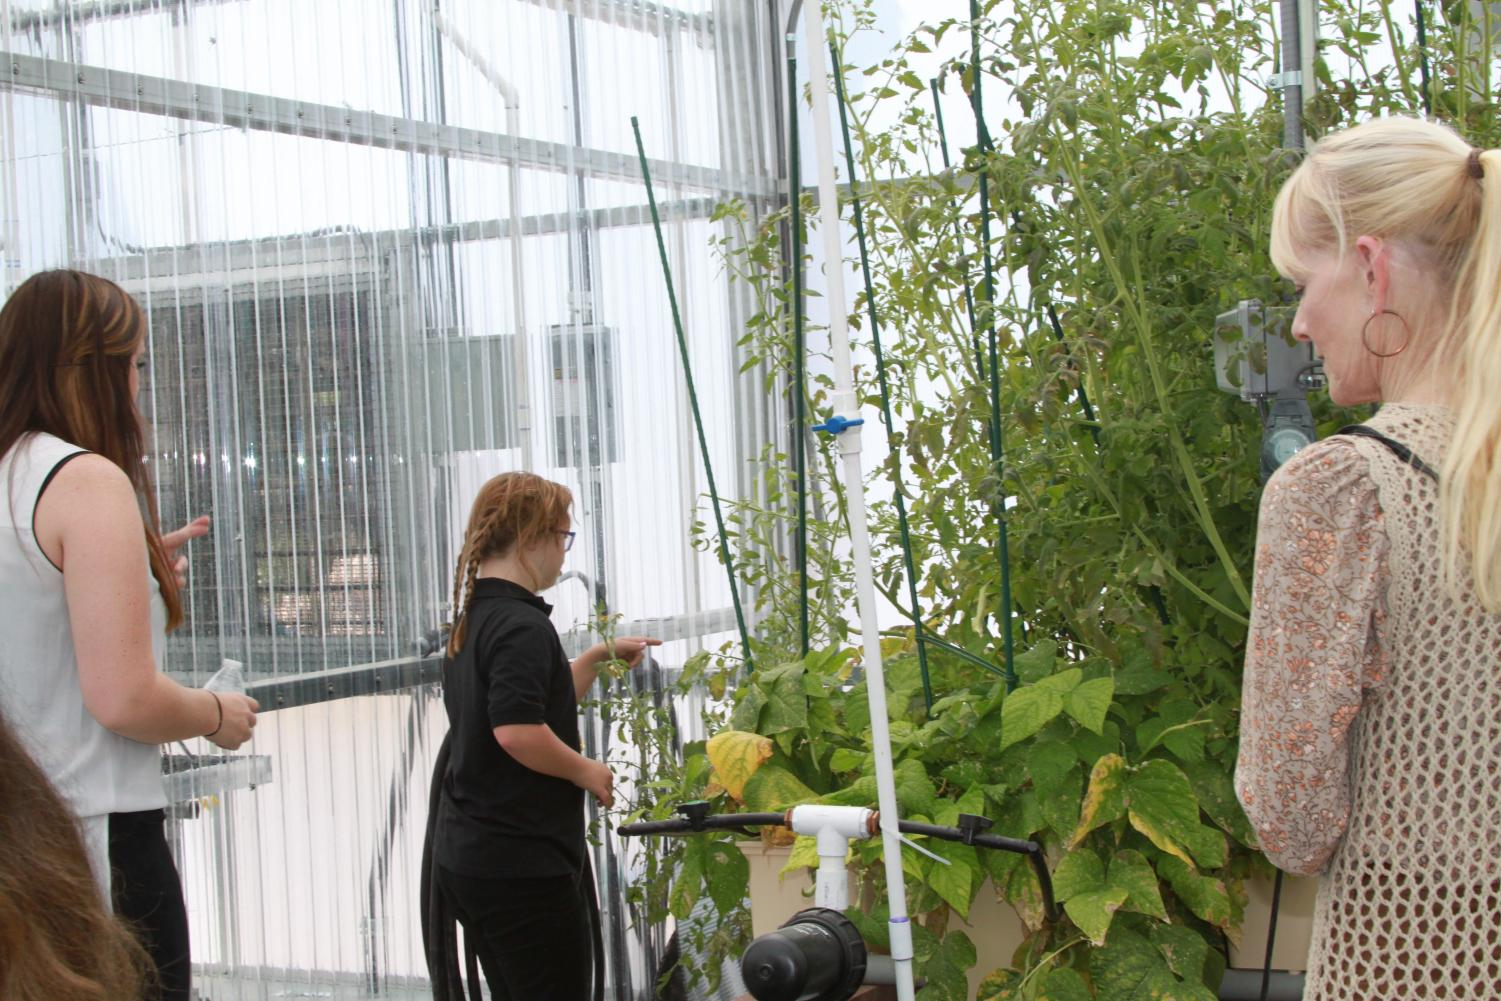 Mark 10:14 student, Antalya, examines plants in the new greenhouse. Mark 10:14 classes will utilize the greenhouse as a new teaching tool for the students.